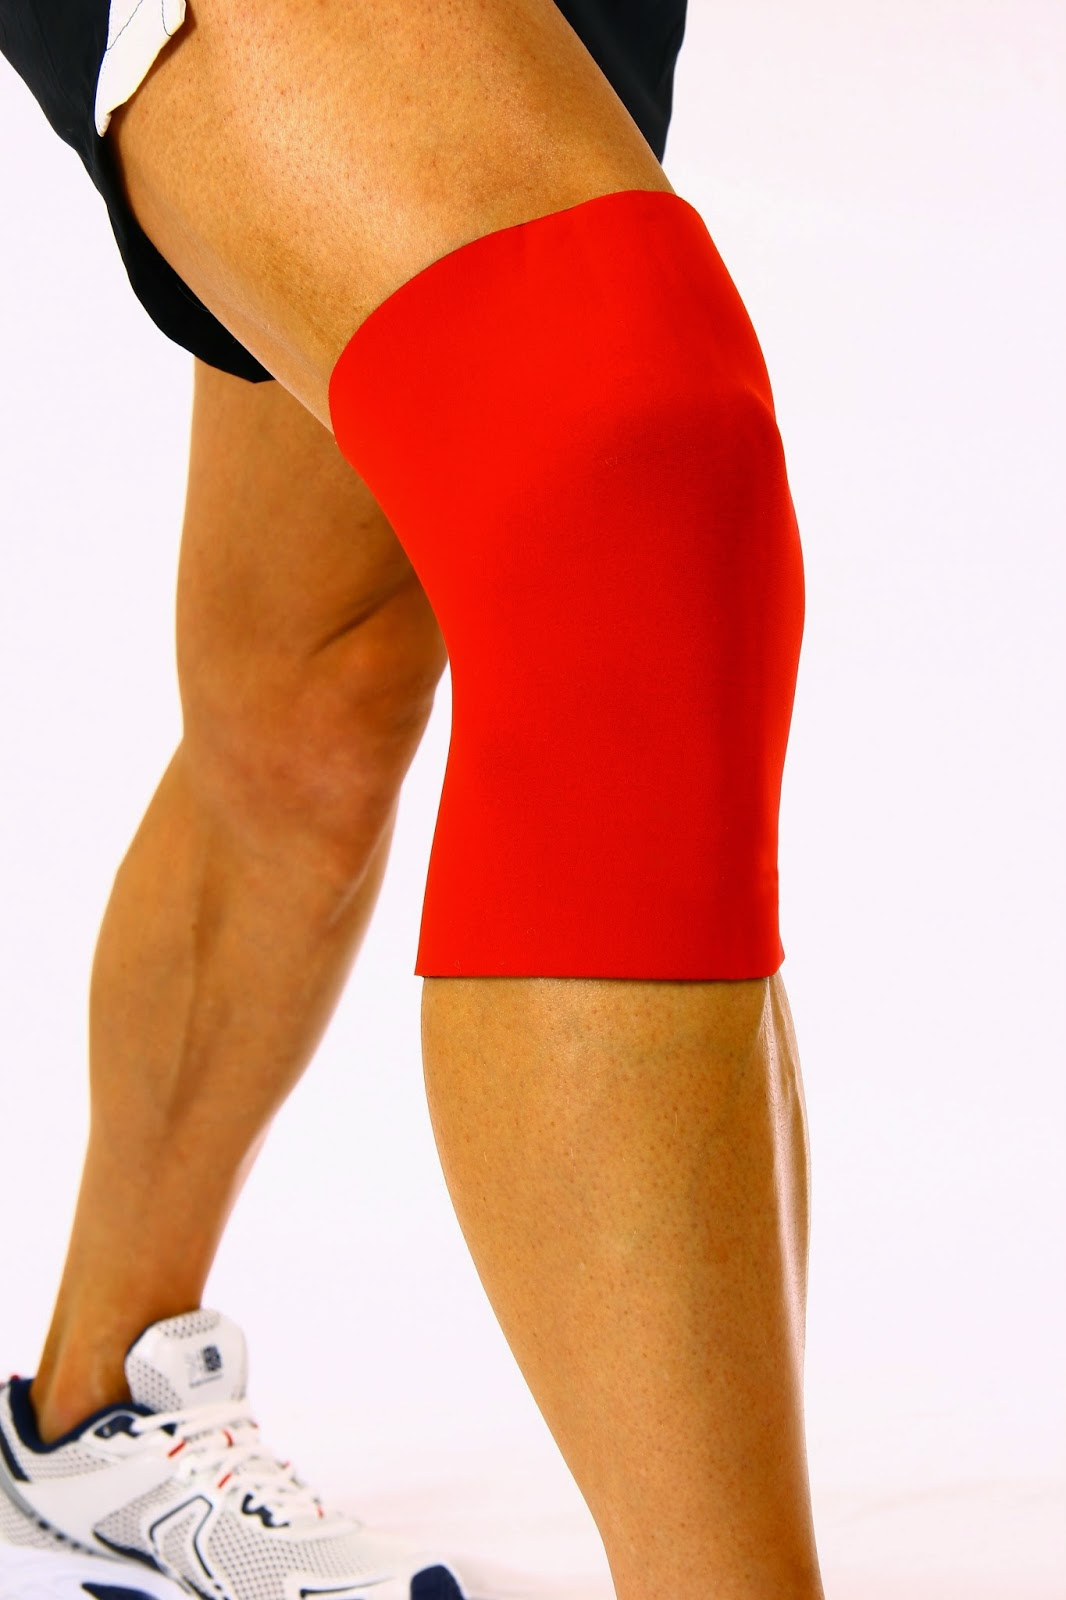 Compression Treatment for Knee Pain - Runners Knee